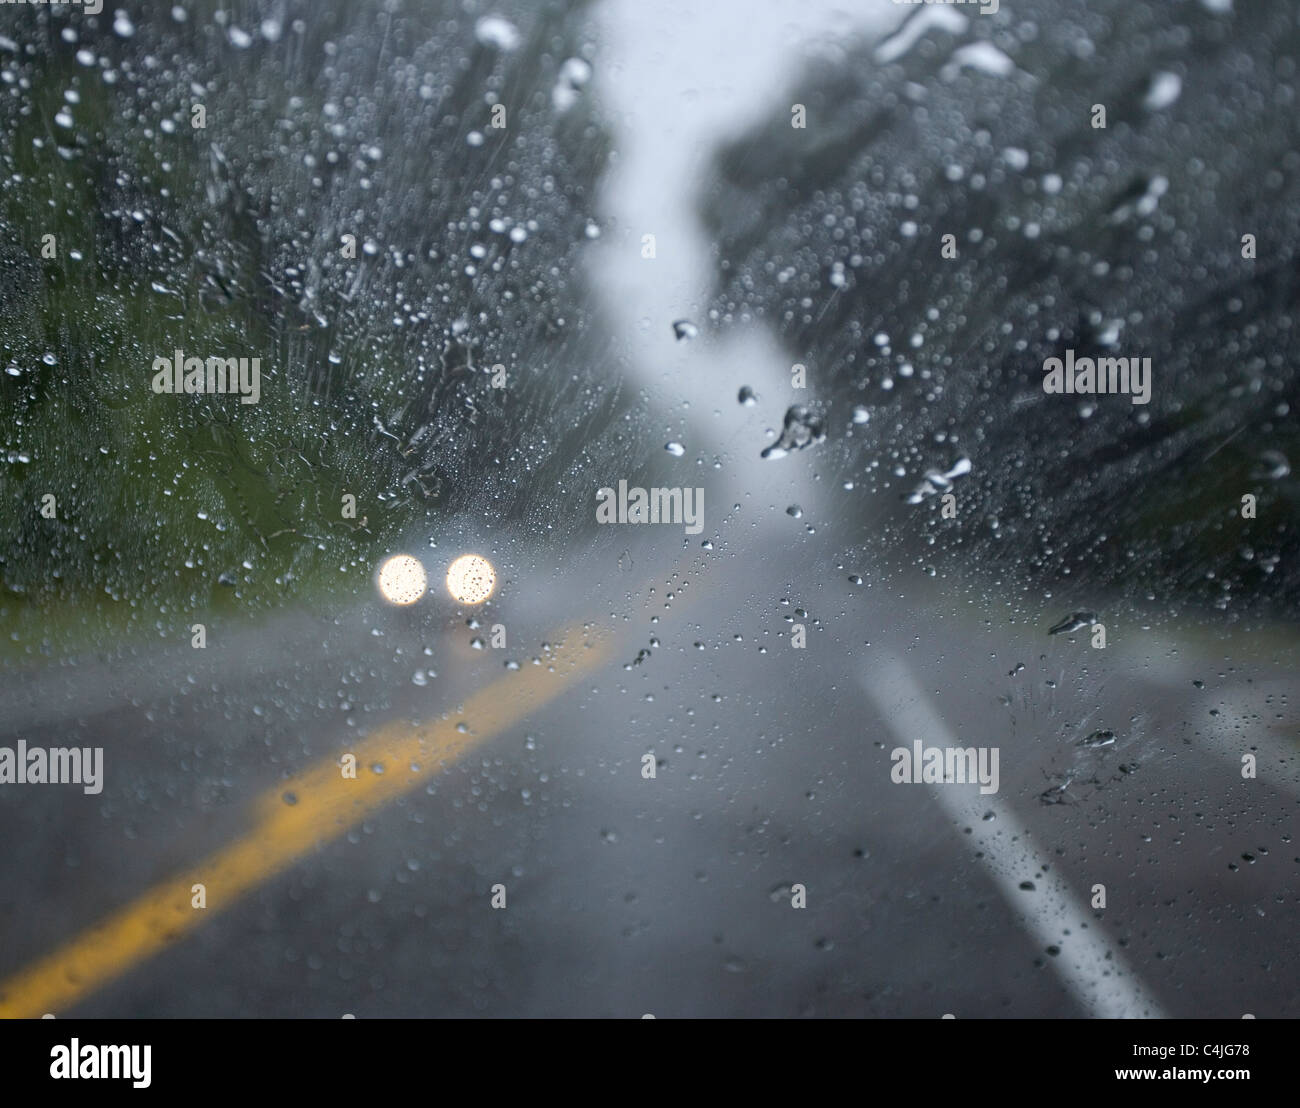 Truck Headlights In Rain : Wet road car headlights stock photos